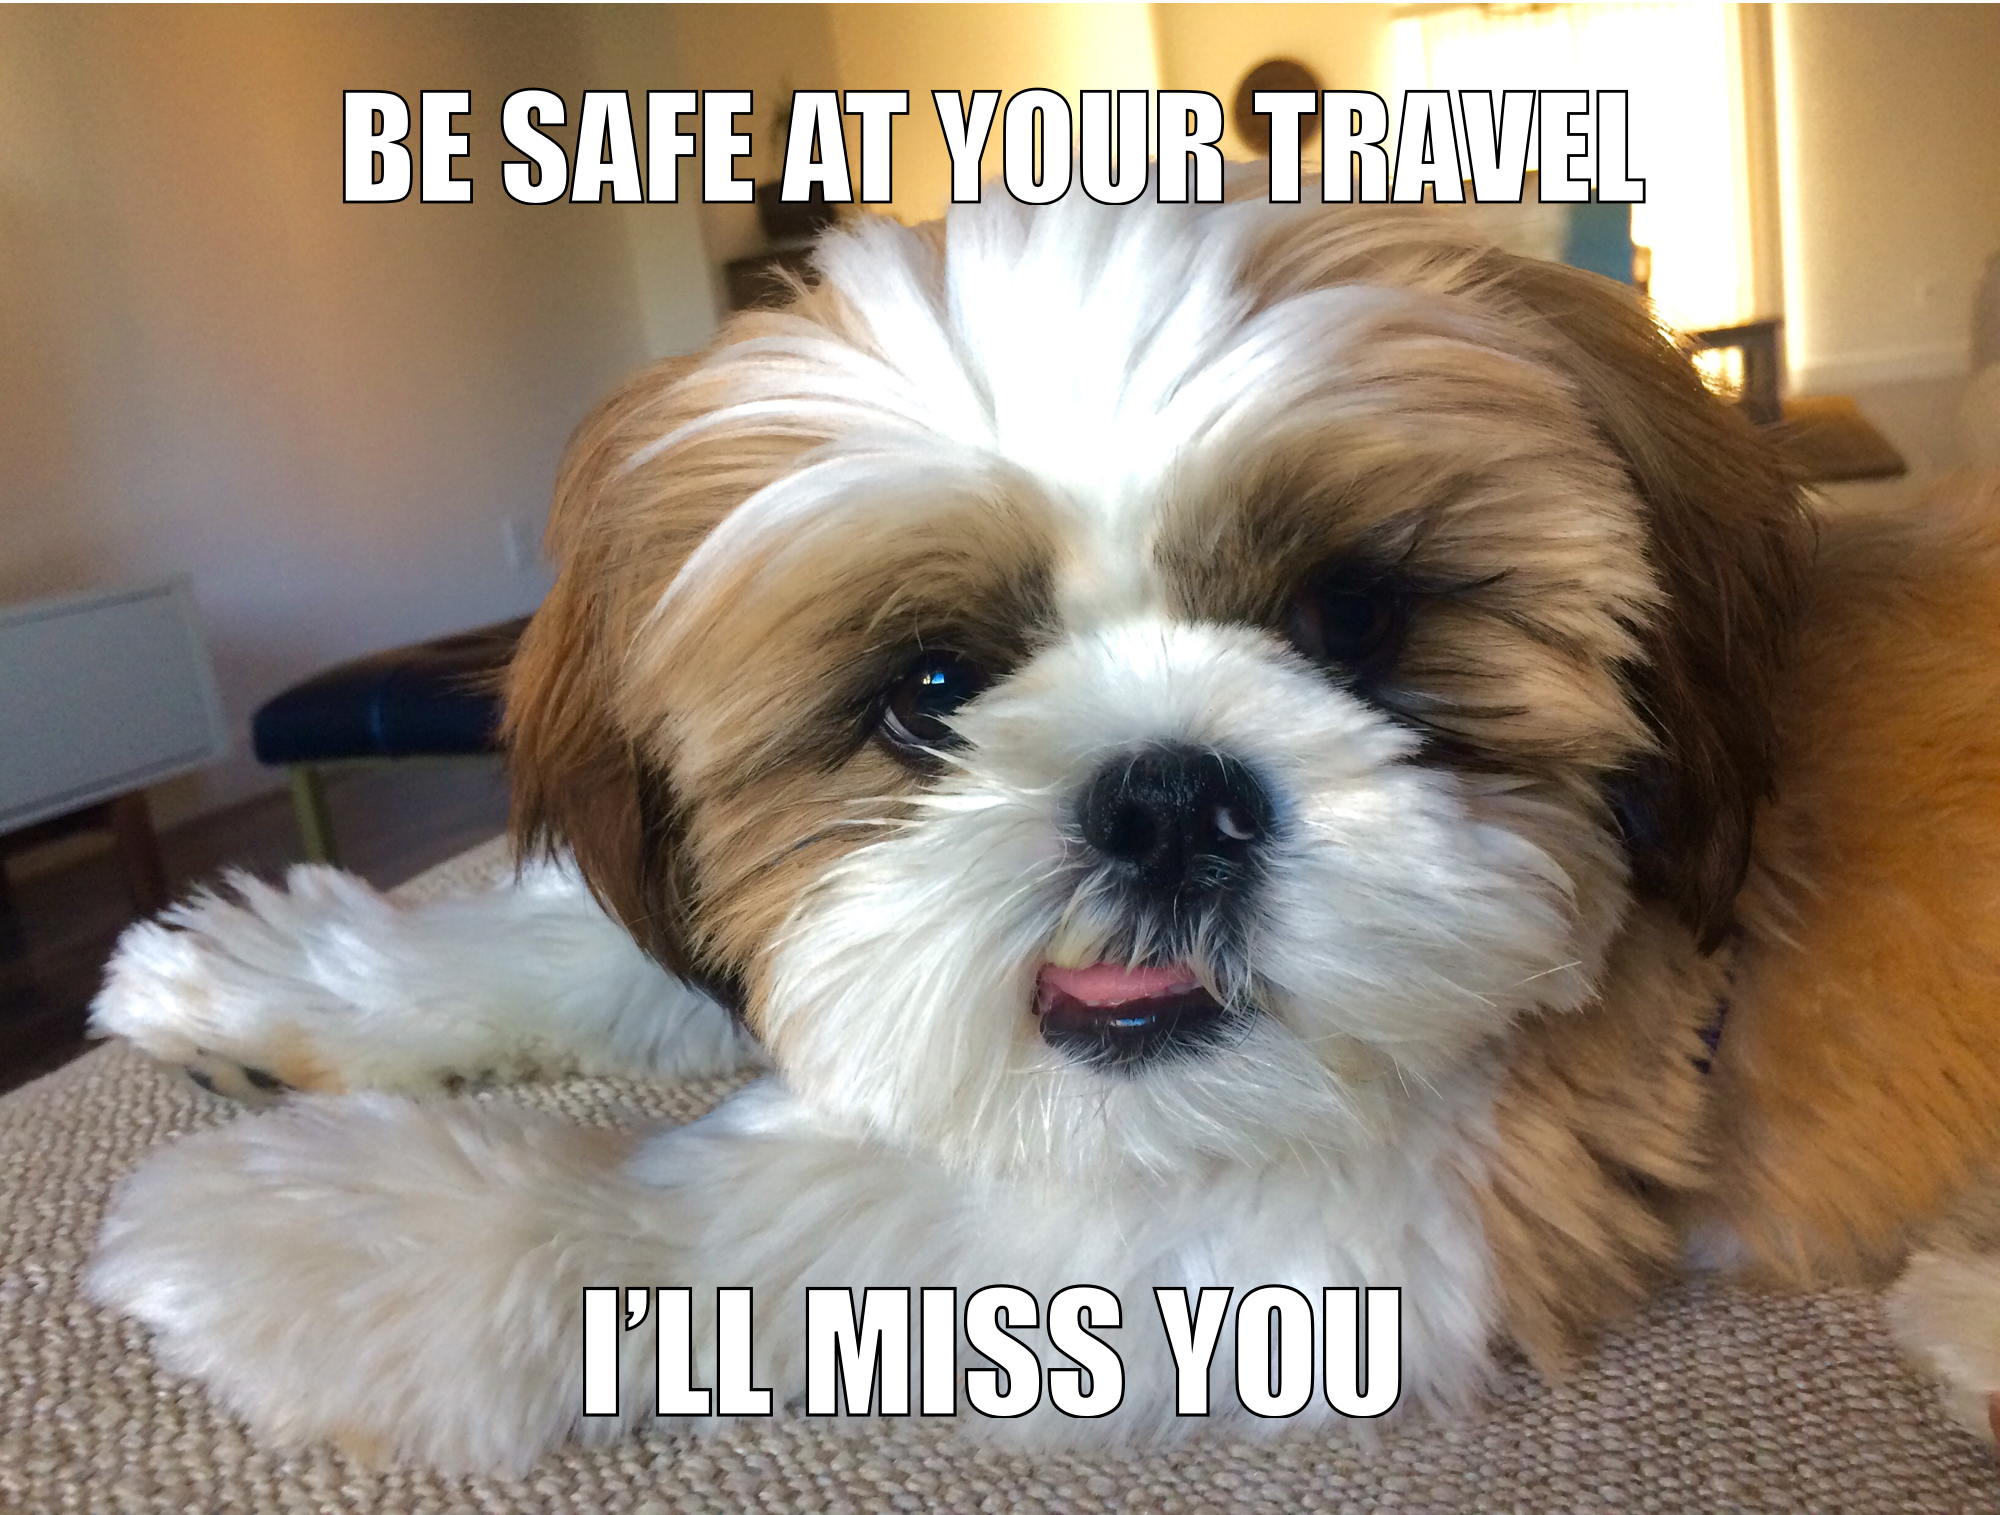 Cute Shih Tzu Puppy Travel Meme Be Safe At Your Travel I Ll Miss You Traveling By Yourself Travel Meme Shih Tzu Puppy